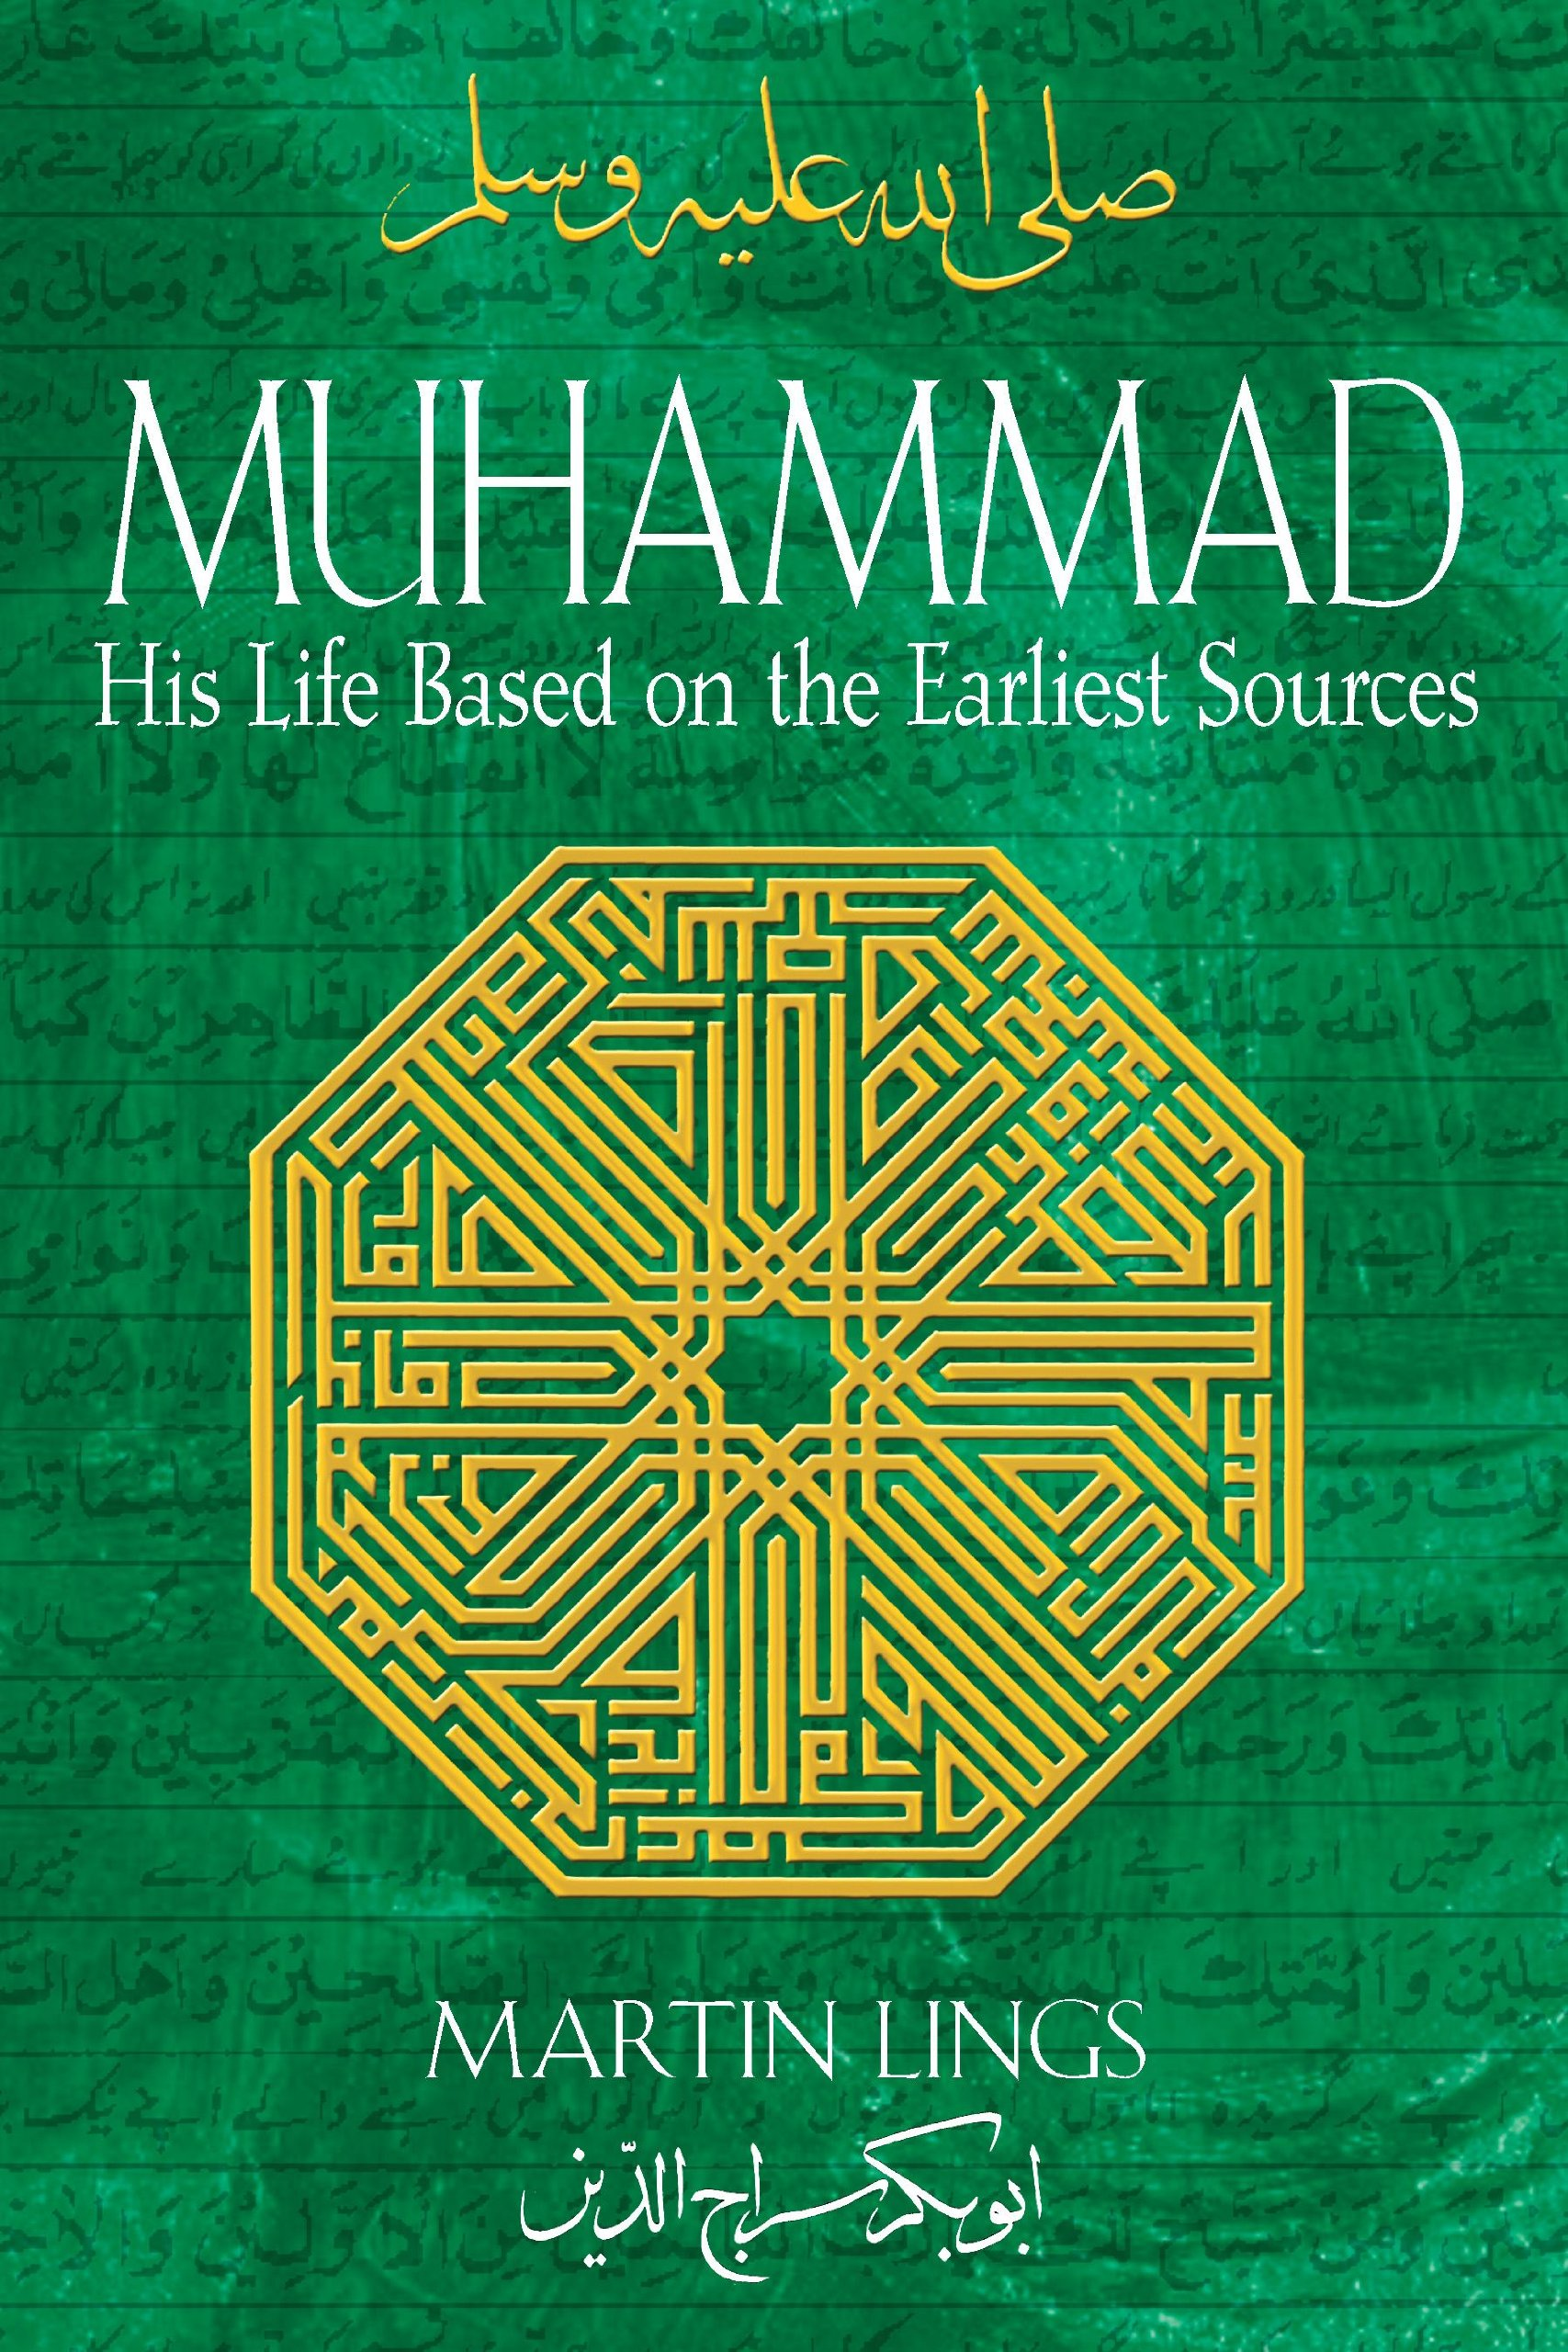 Muhammad Life Based Earliest Sources product image